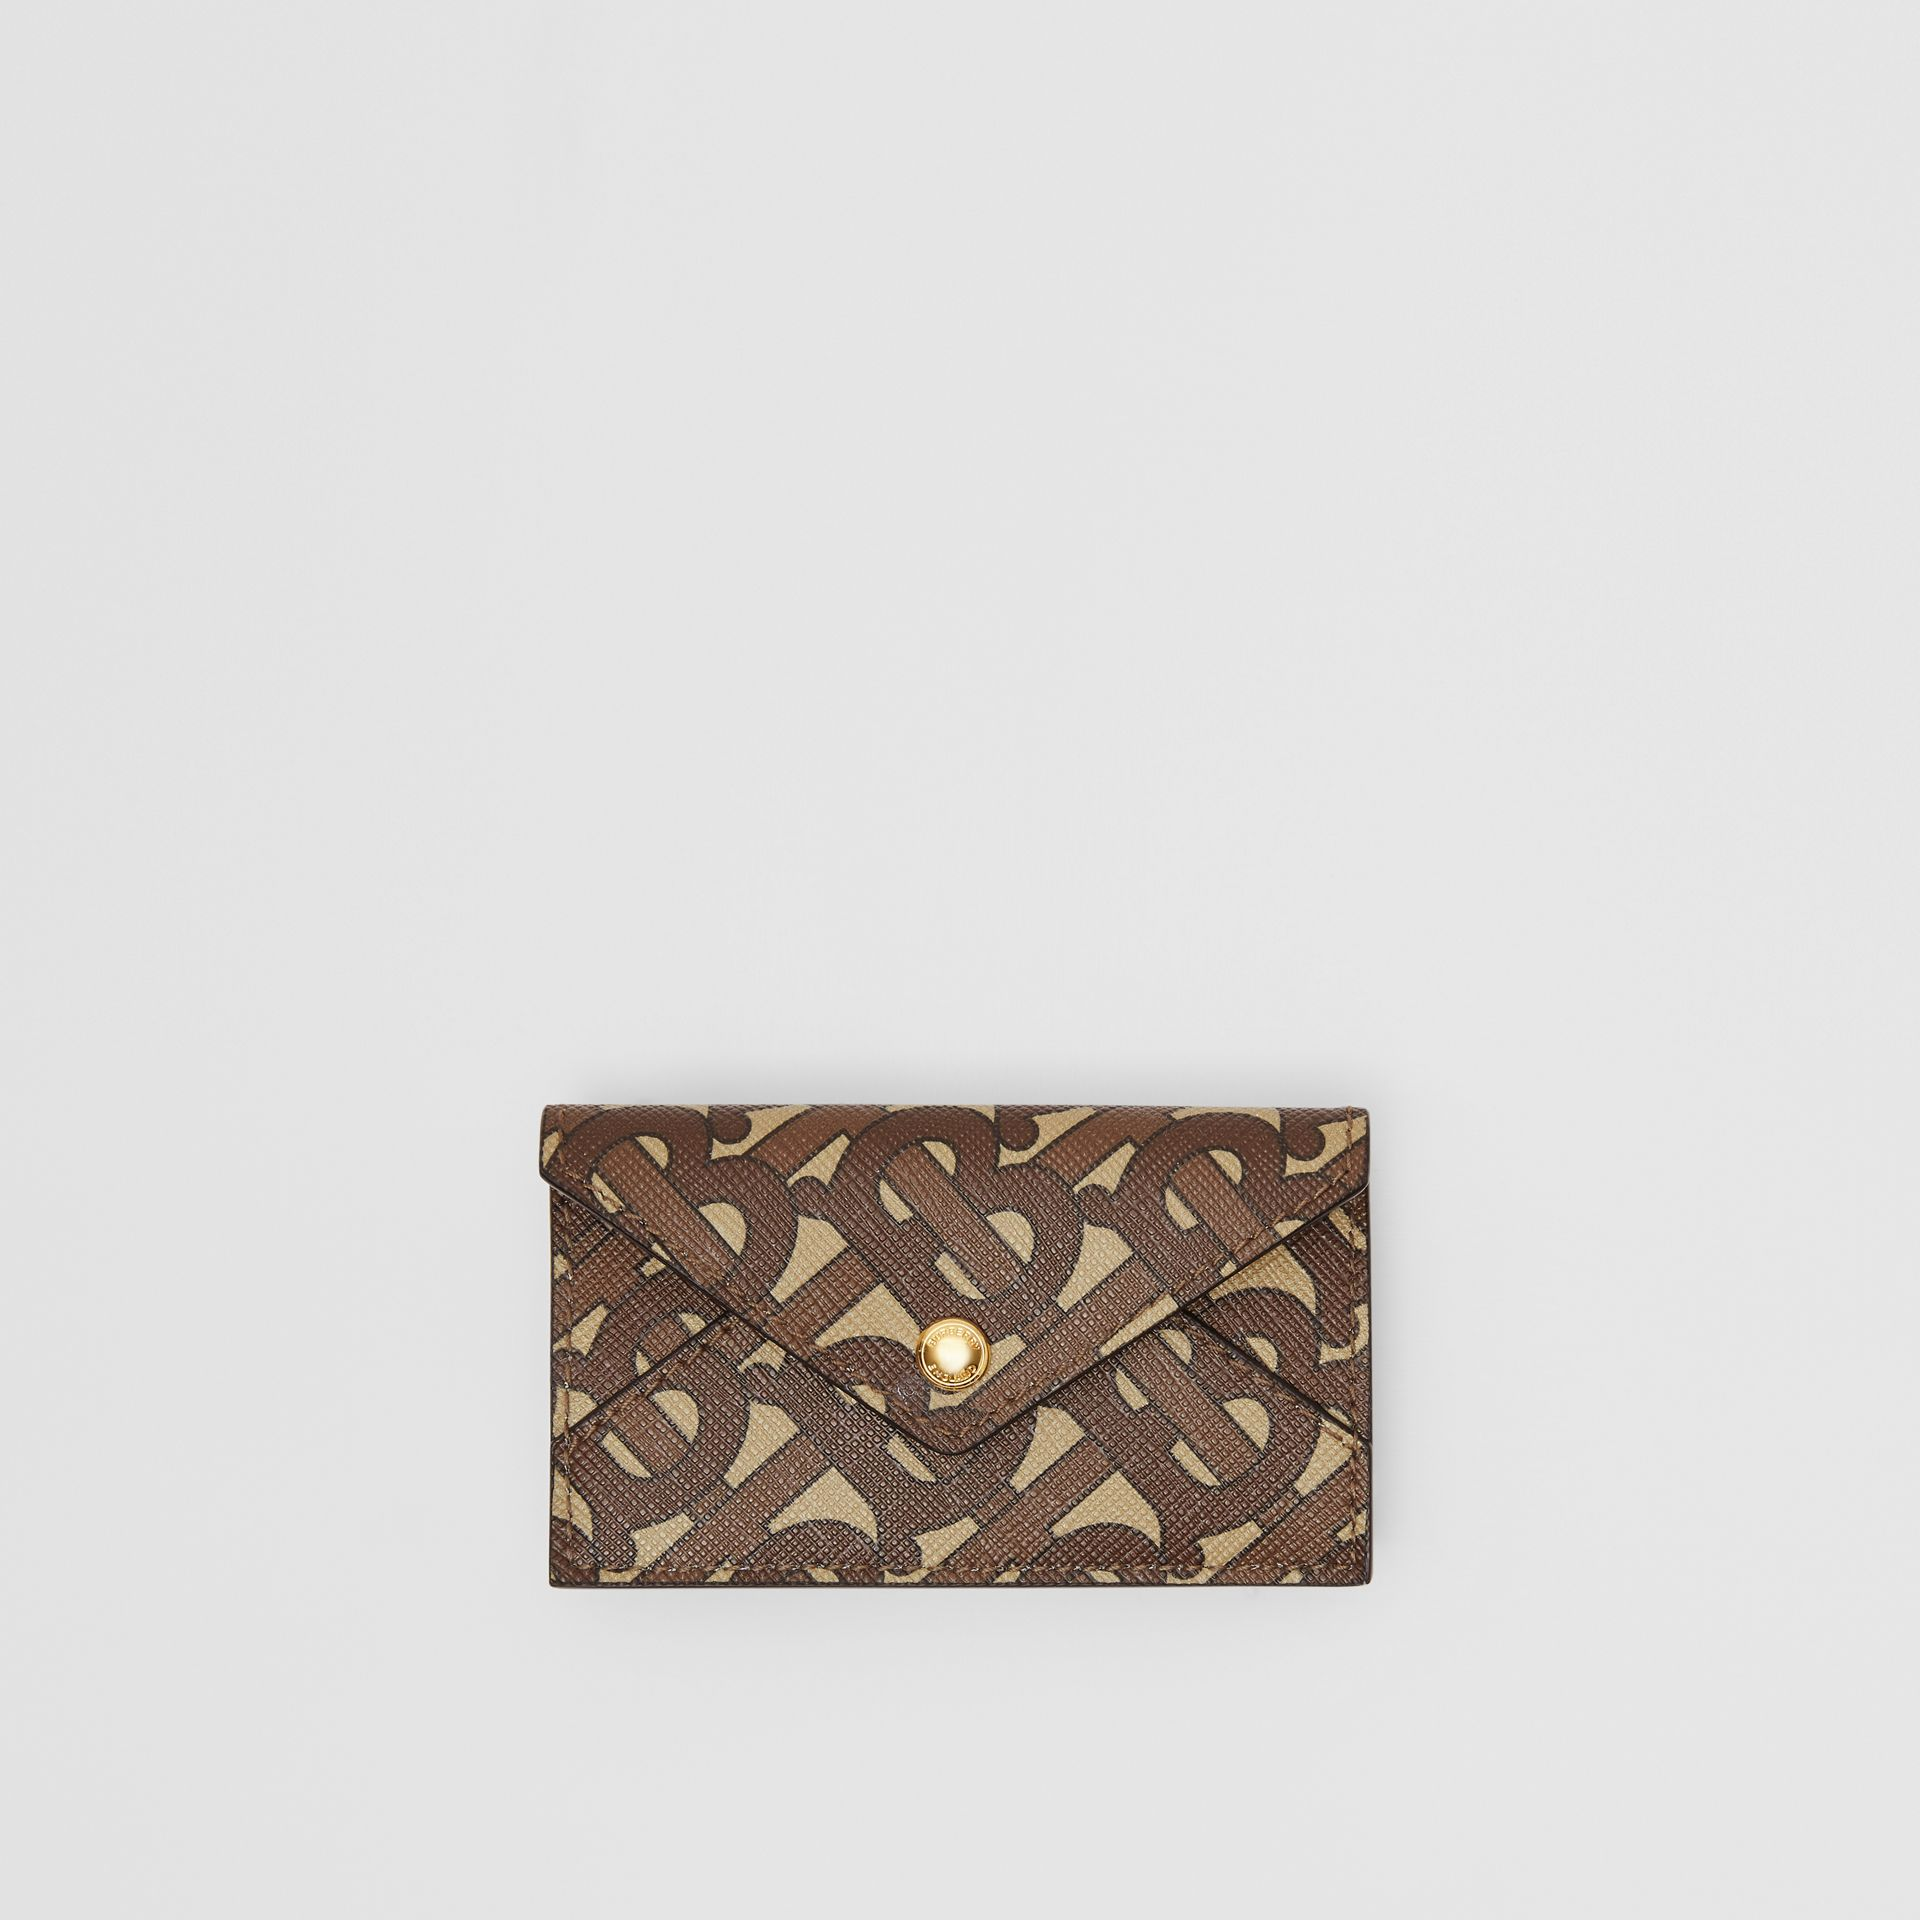 Belted Monogram E-canvas TB Envelope Clutch in Bridle Brown - Women | Burberry - gallery image 7